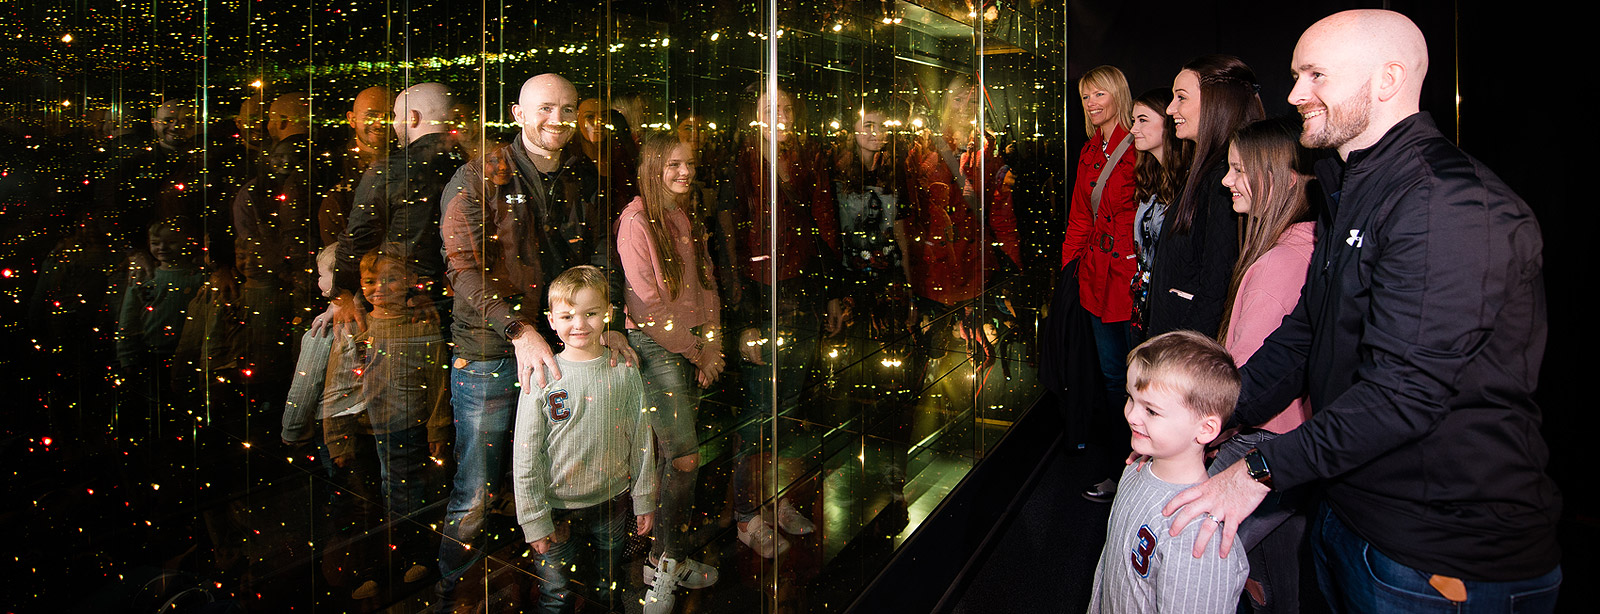 Camera Obscura and World of Illusions - Tickets